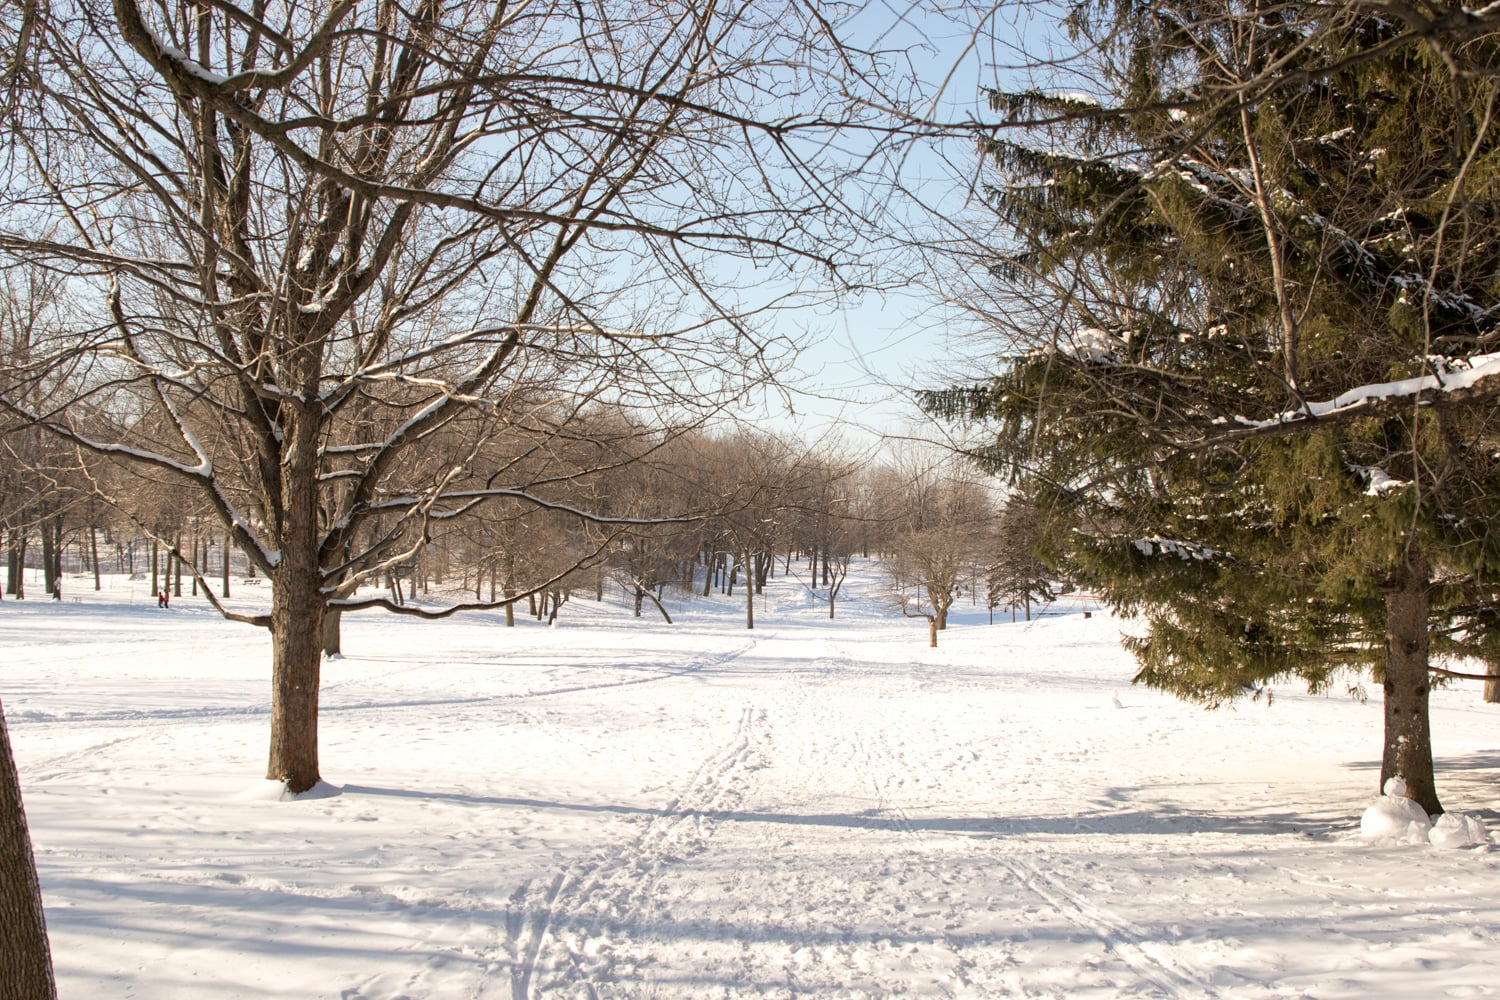 Mount Royal Park covered in snow.